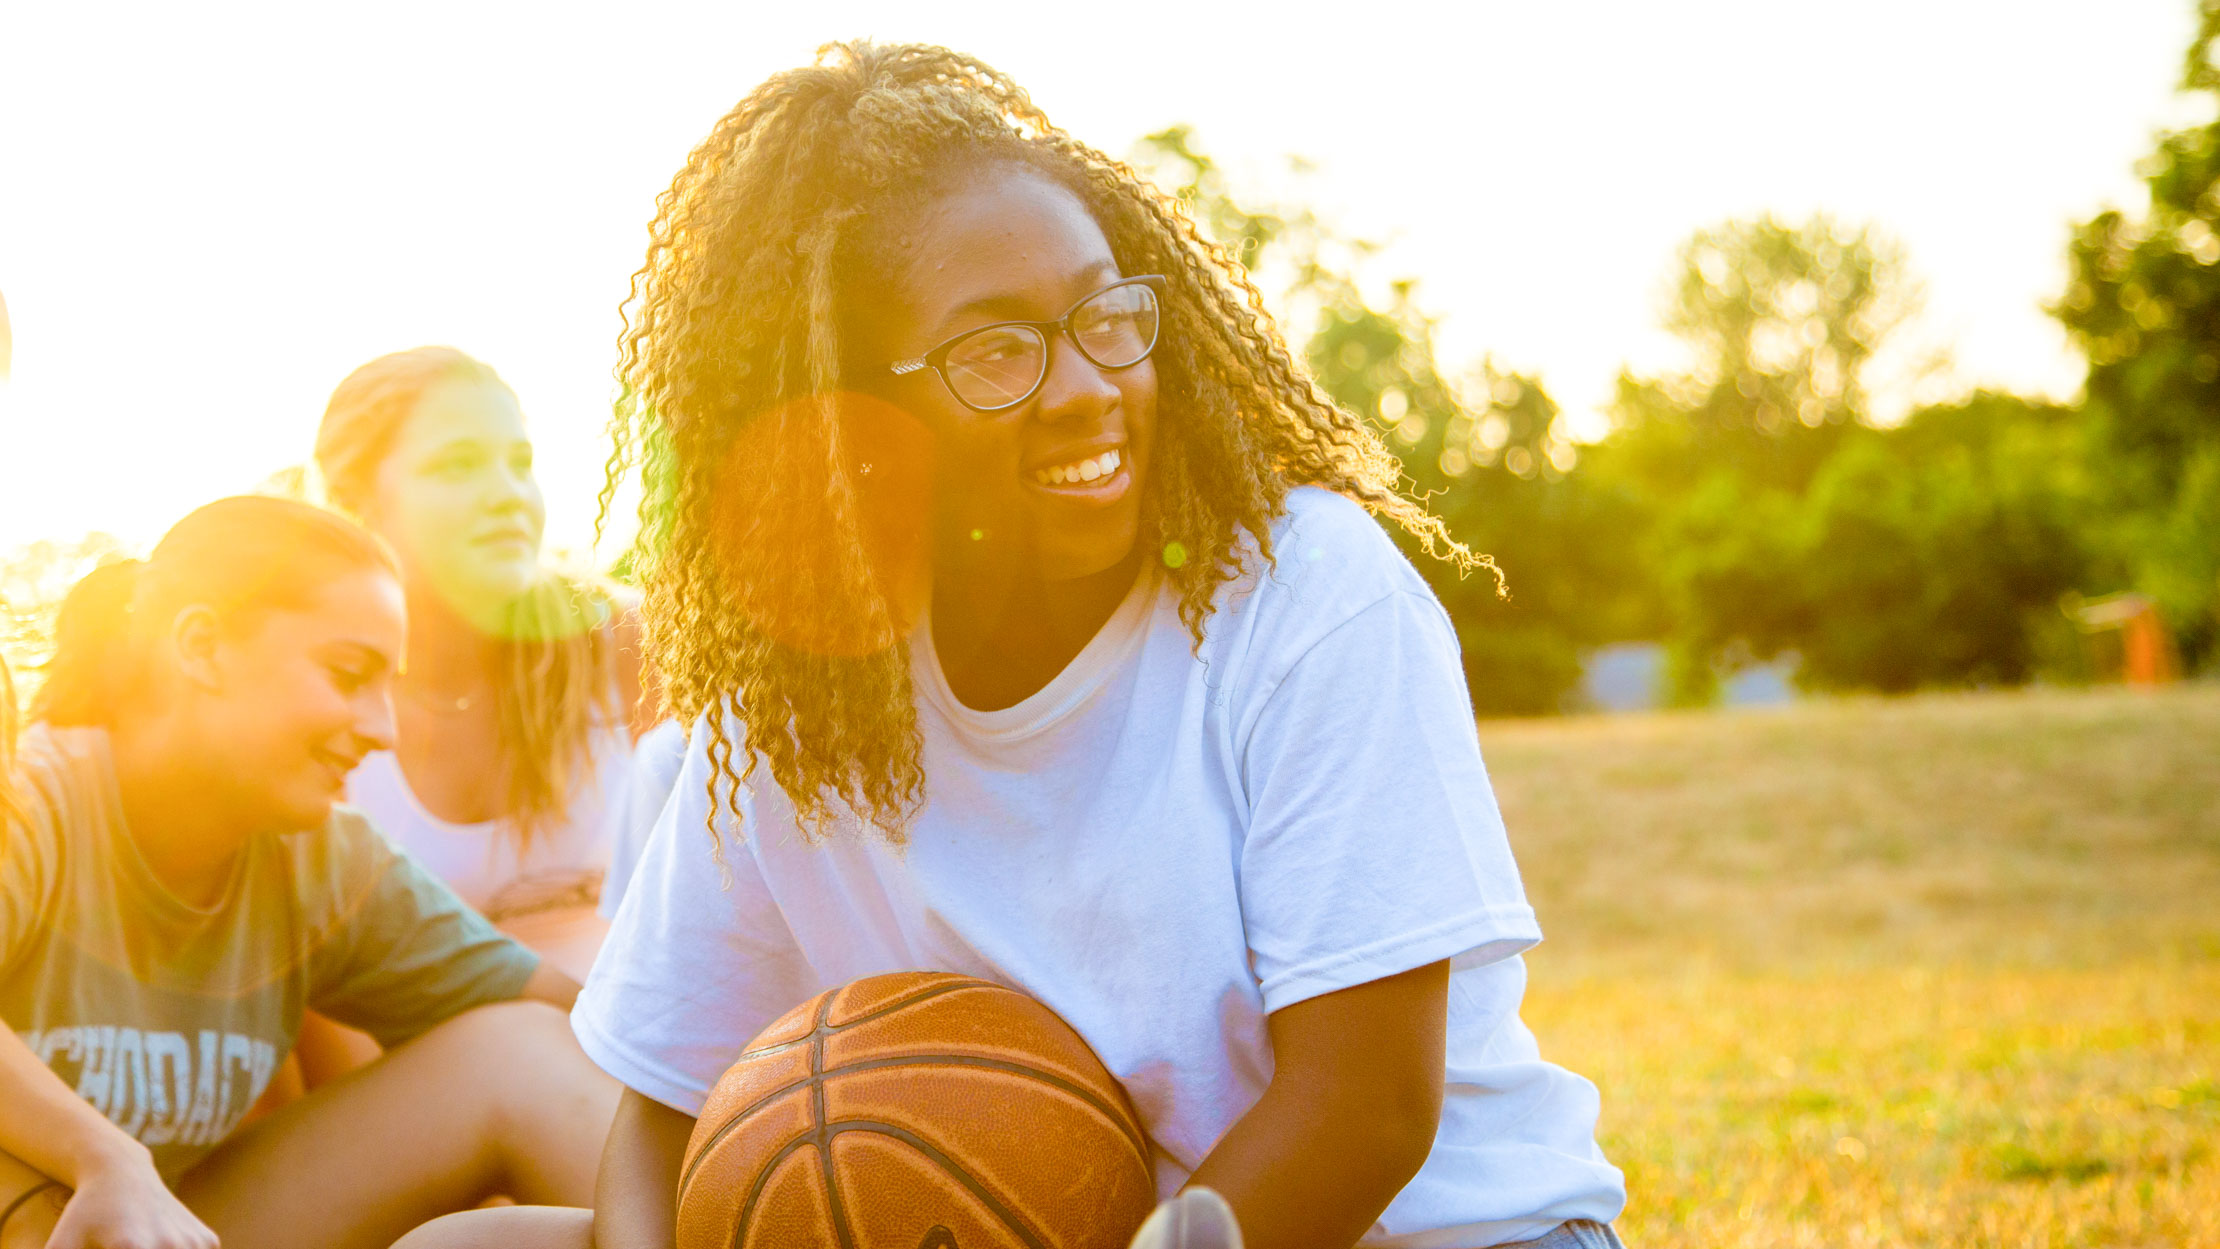 Smiling girl holds basketball at sunset